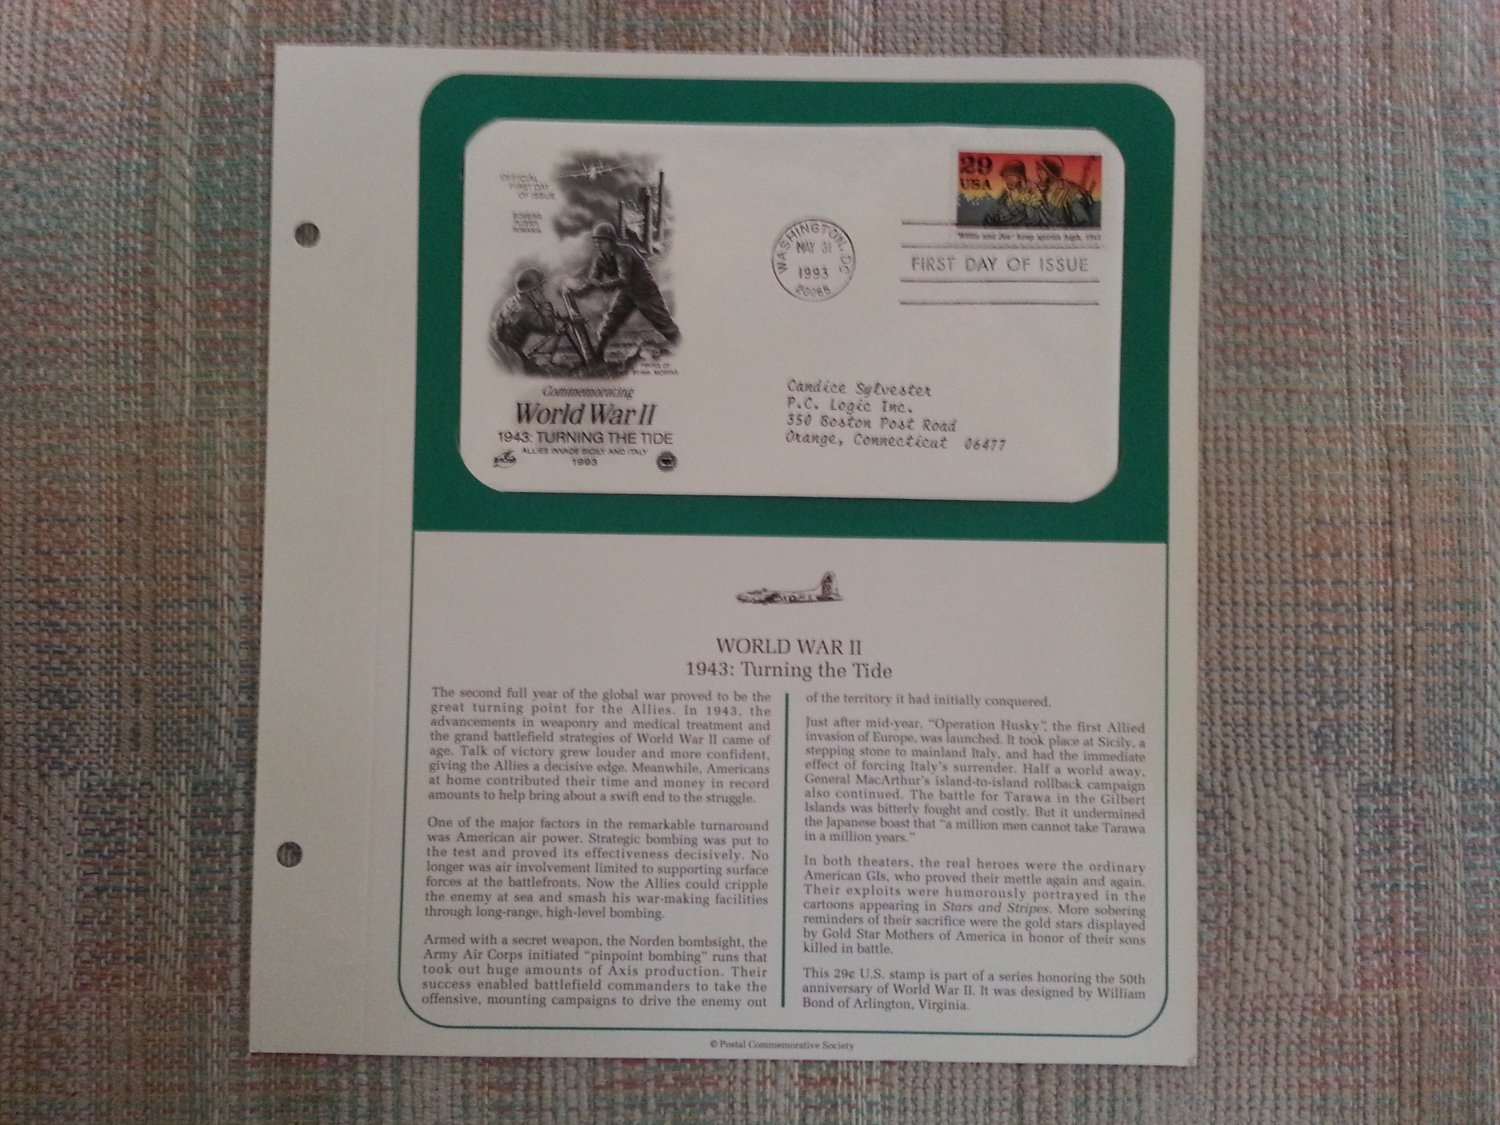 WORLD WAR II 1943:TURNING THE TIDE MAY 31,1993 OFFICIAL FIRST DAY OF ISSUE COVERS STAMP MINT COND!